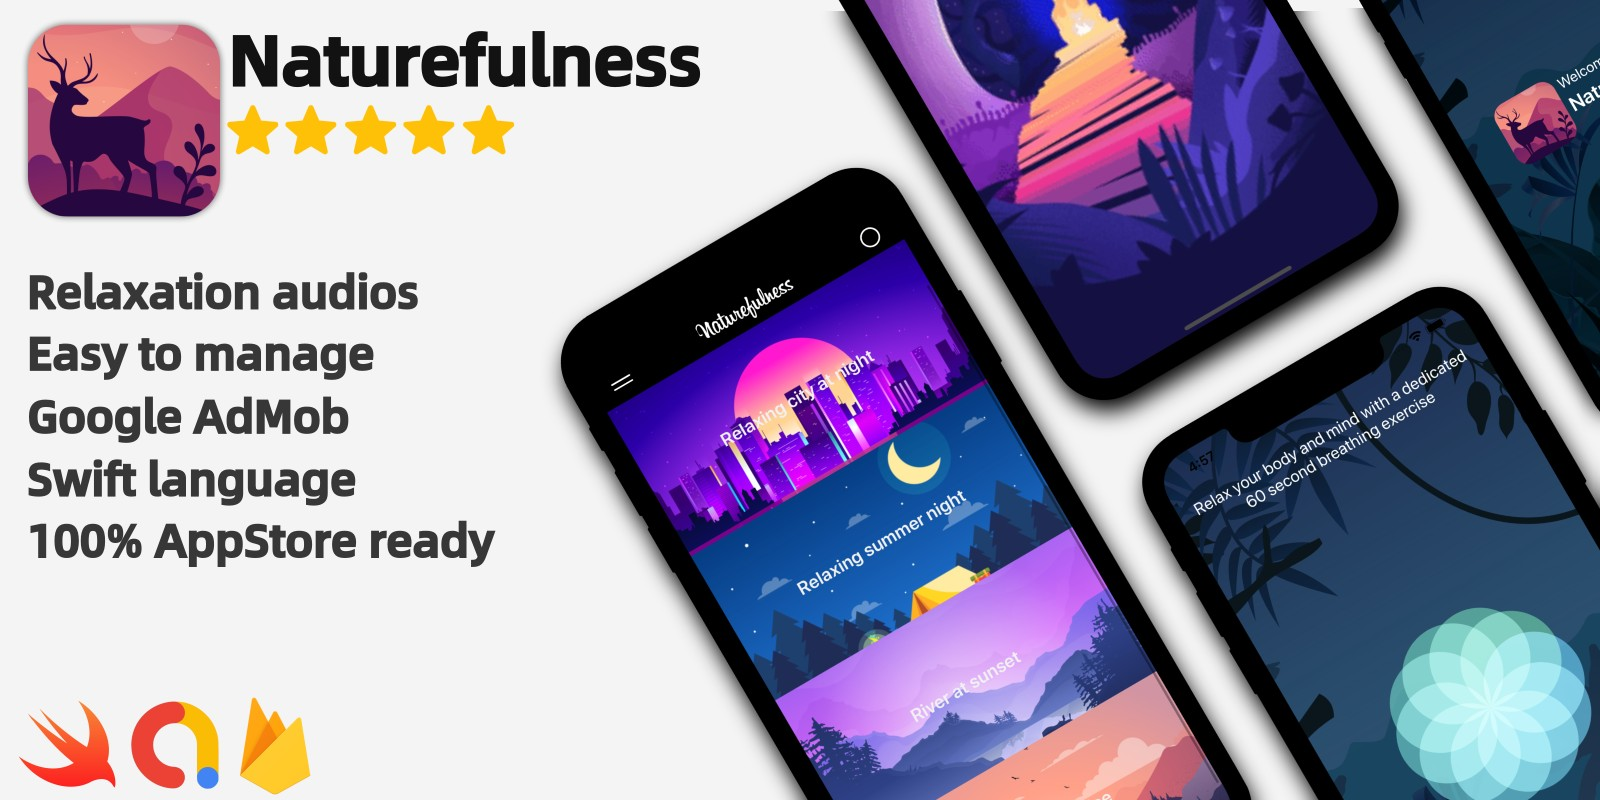 Naturefulness - iOS Relaxation Application